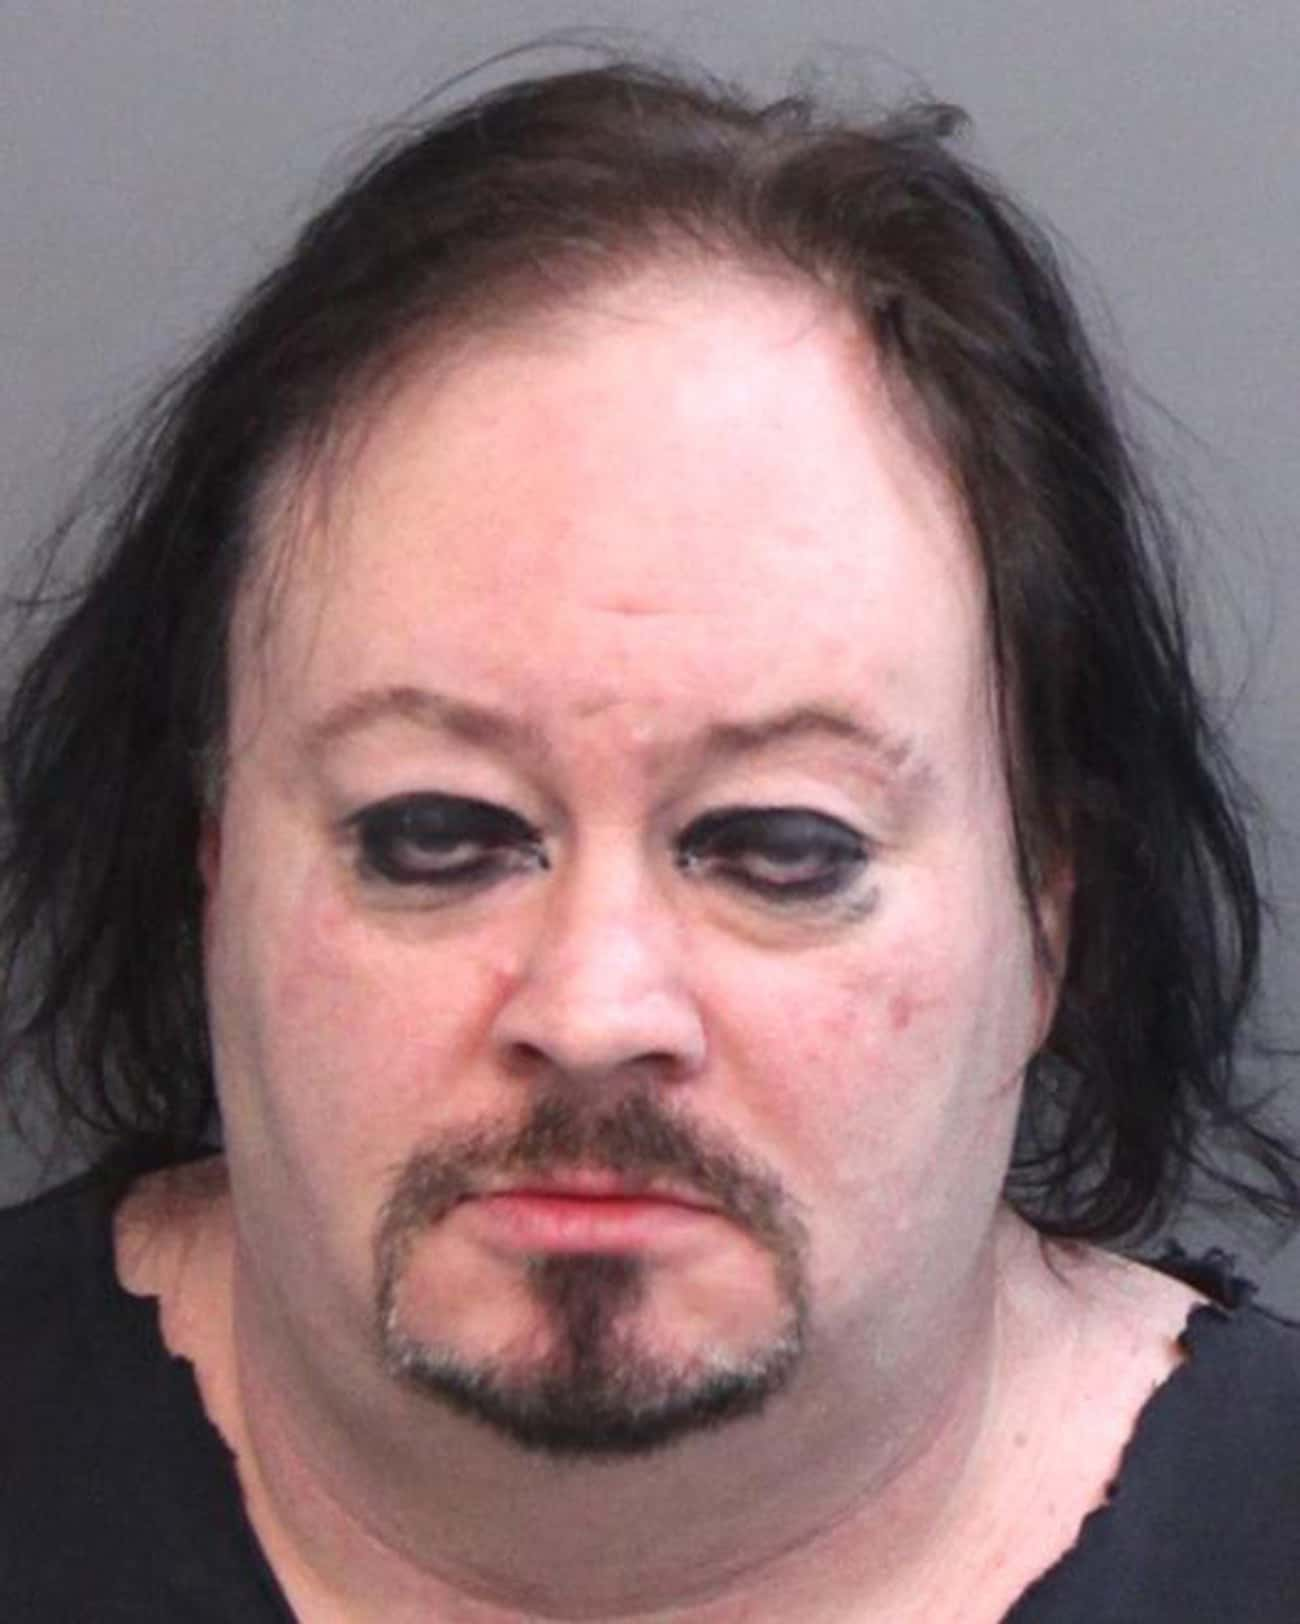 Boys Don't Cry is listed (or ranked) 3 on the list The Creepiest (Funny) Mugshots Ever